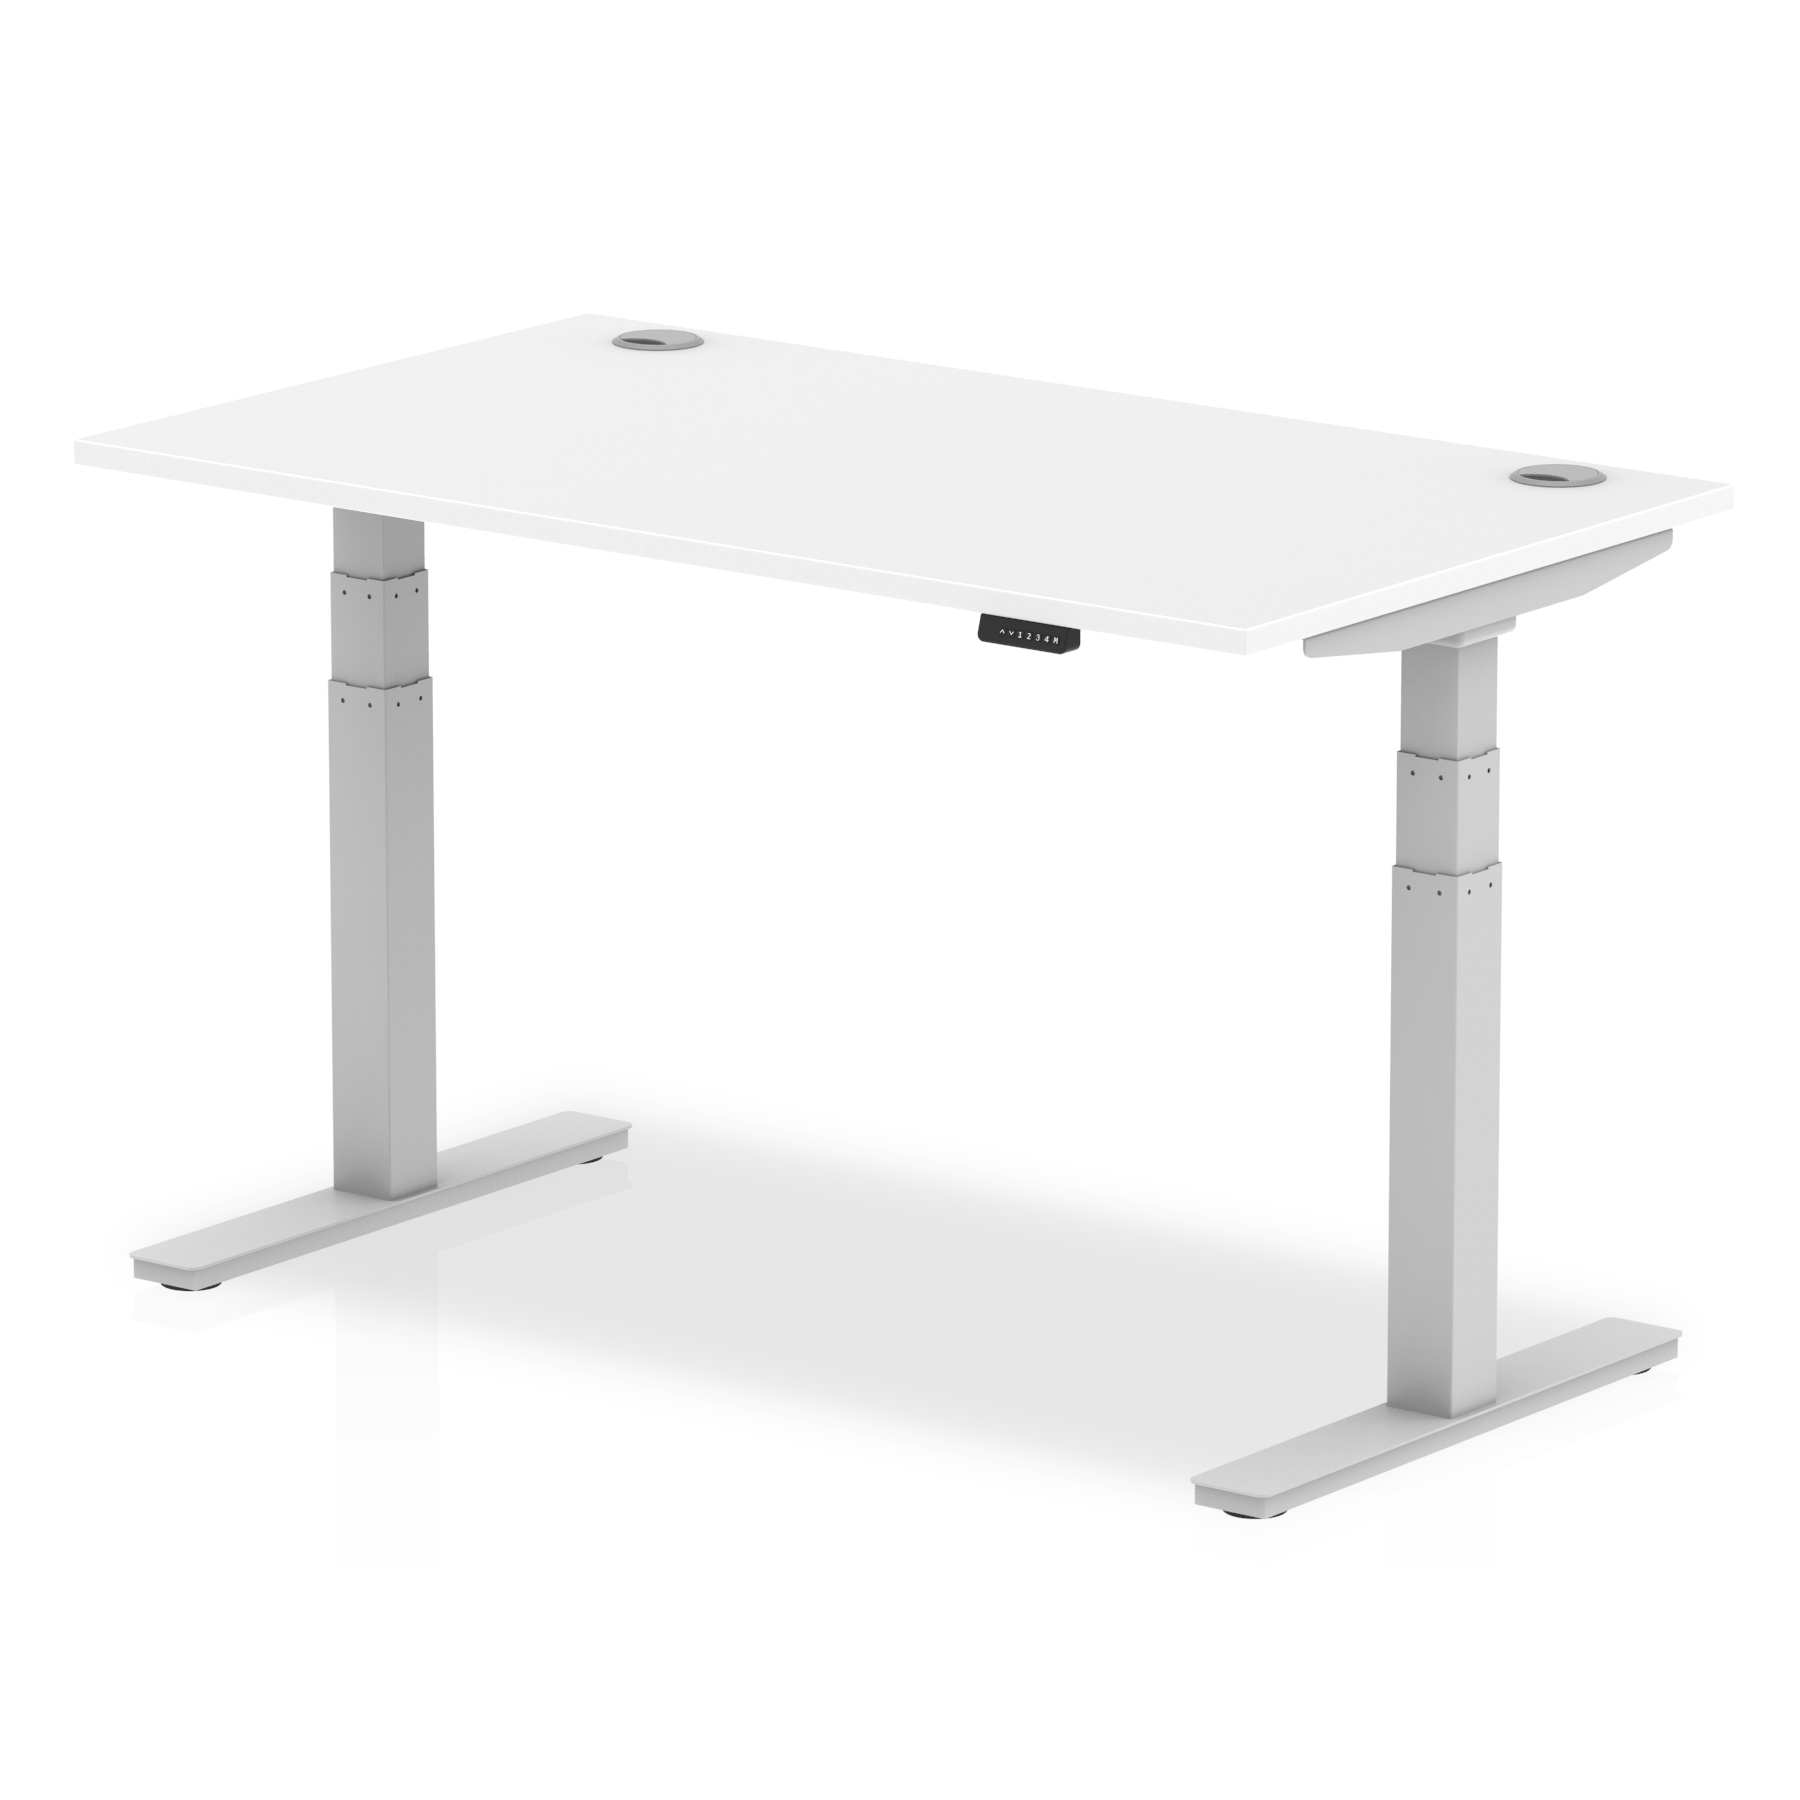 Trexus Sit Stand Desk With Cable Ports Silver Legs 1400x800mm White Ref HA01090